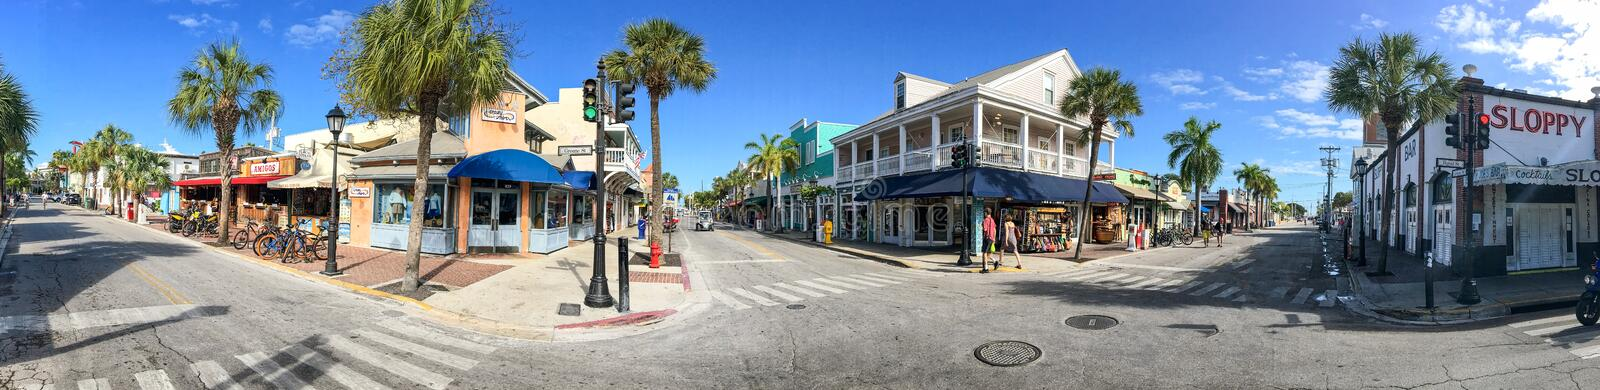 KEY WEST, FL - FEBRUARY 2016: Tourists along city streets, panoramic view. Key West is a major tourist destination in Florida.  royalty free stock image